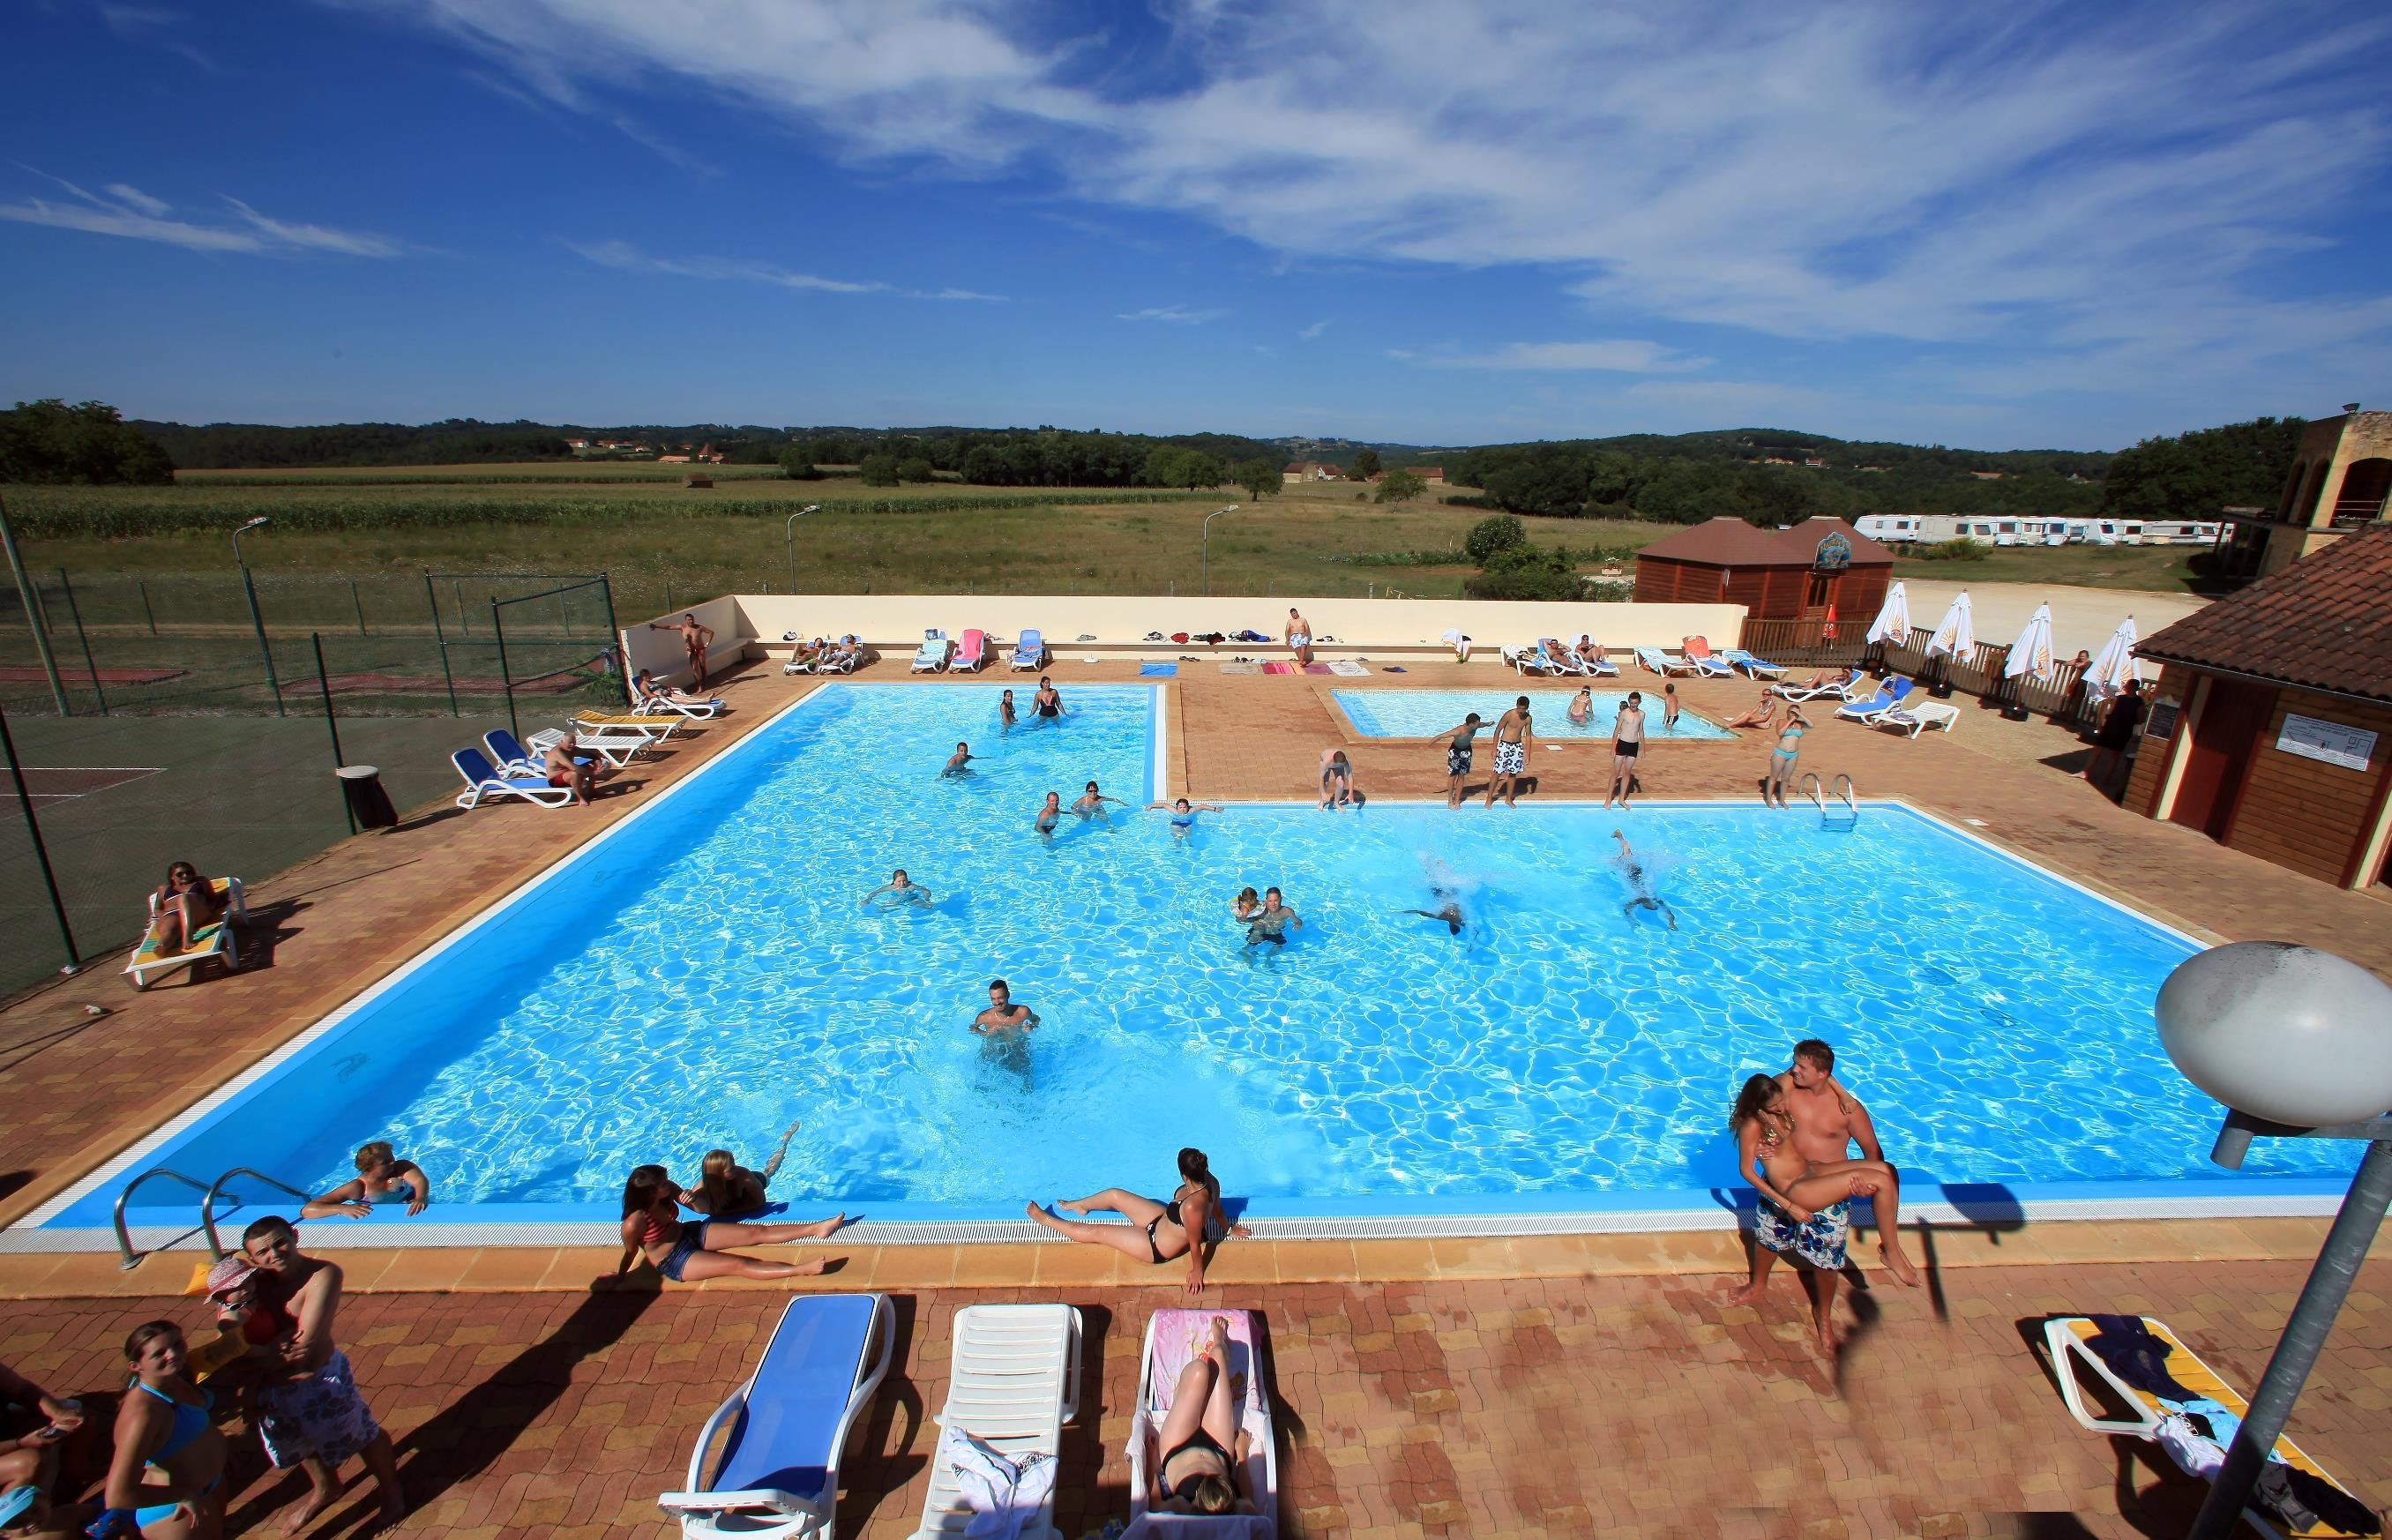 Camping de Maillac zwembad